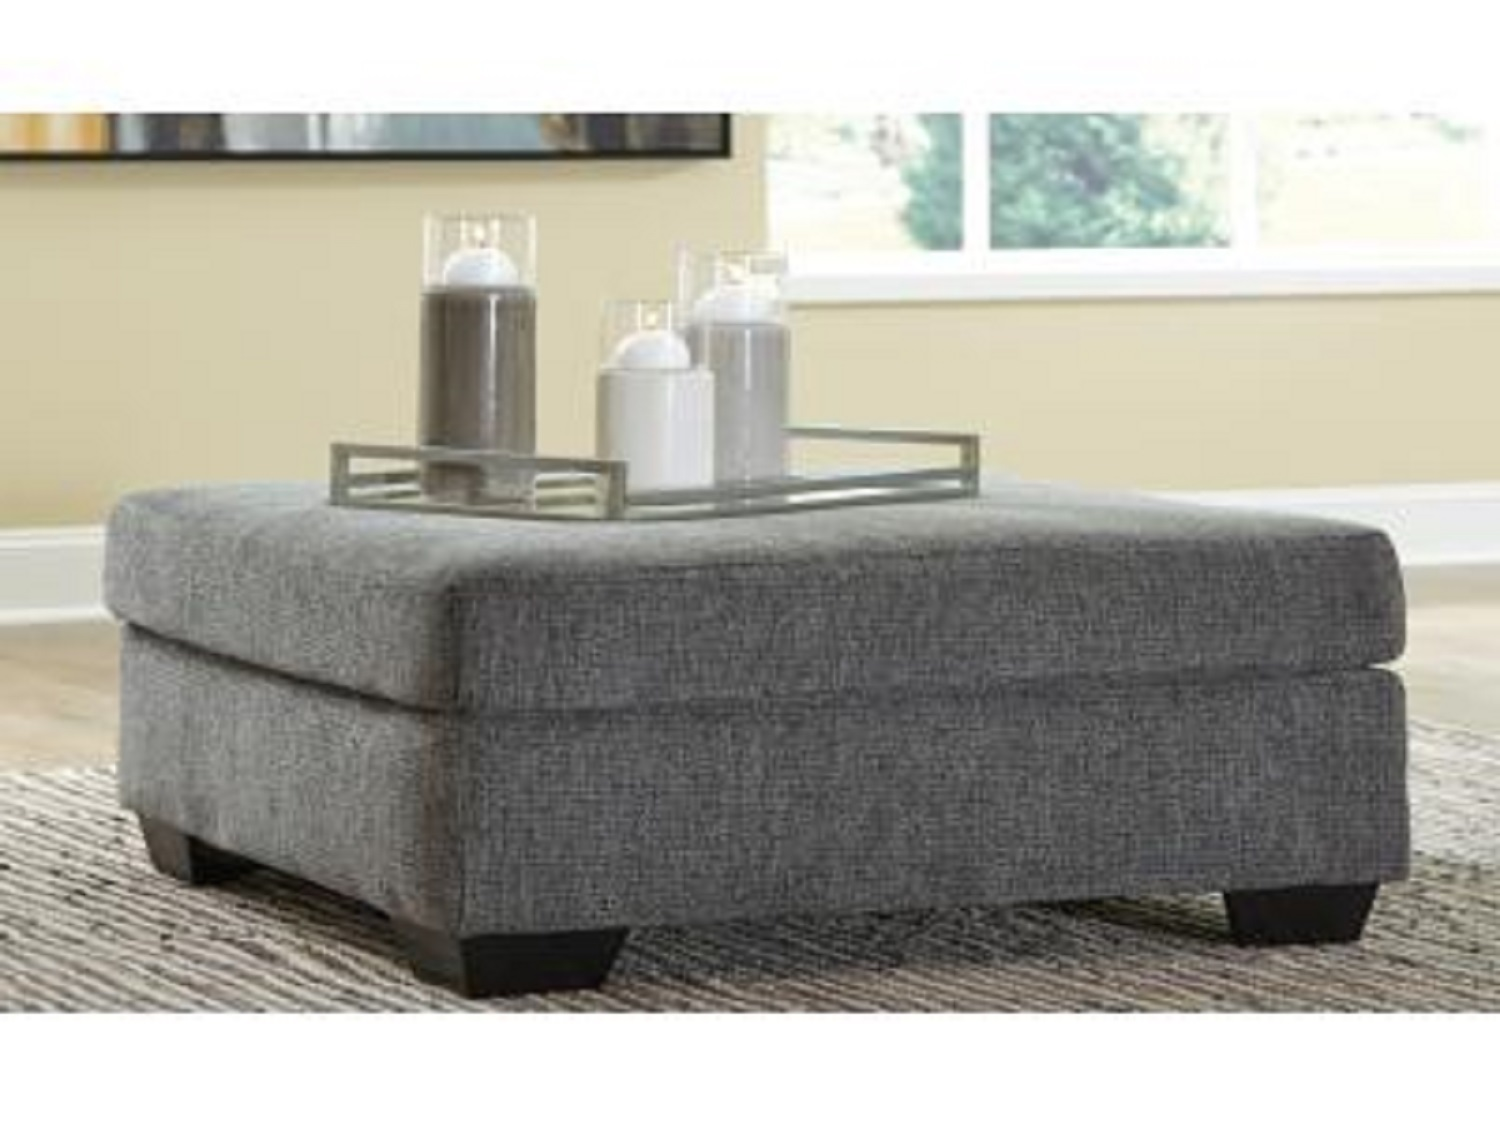 Dalhart Oversized Accent Ottoman, 85703, Ottoman by Midha Furniture to Brampton, Mississauga, Etobicoke, Toronto, Scraborough, Caledon, Oakville, Markham, Ajax, Pickering, Oshawa, Richmondhill, Kitchener, Hamilton and GTA area